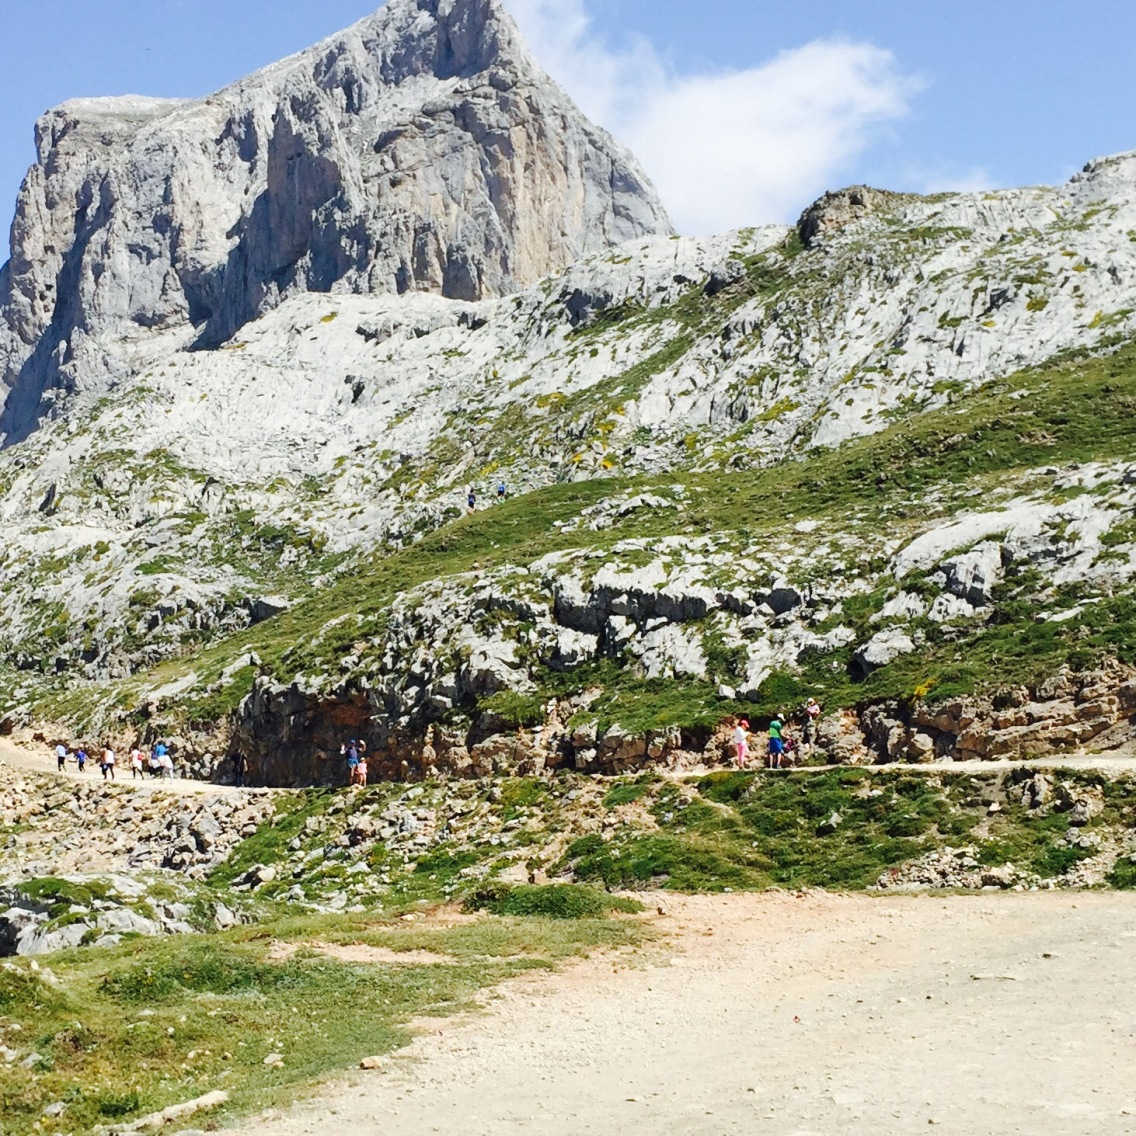 The rugged Picos de Europa